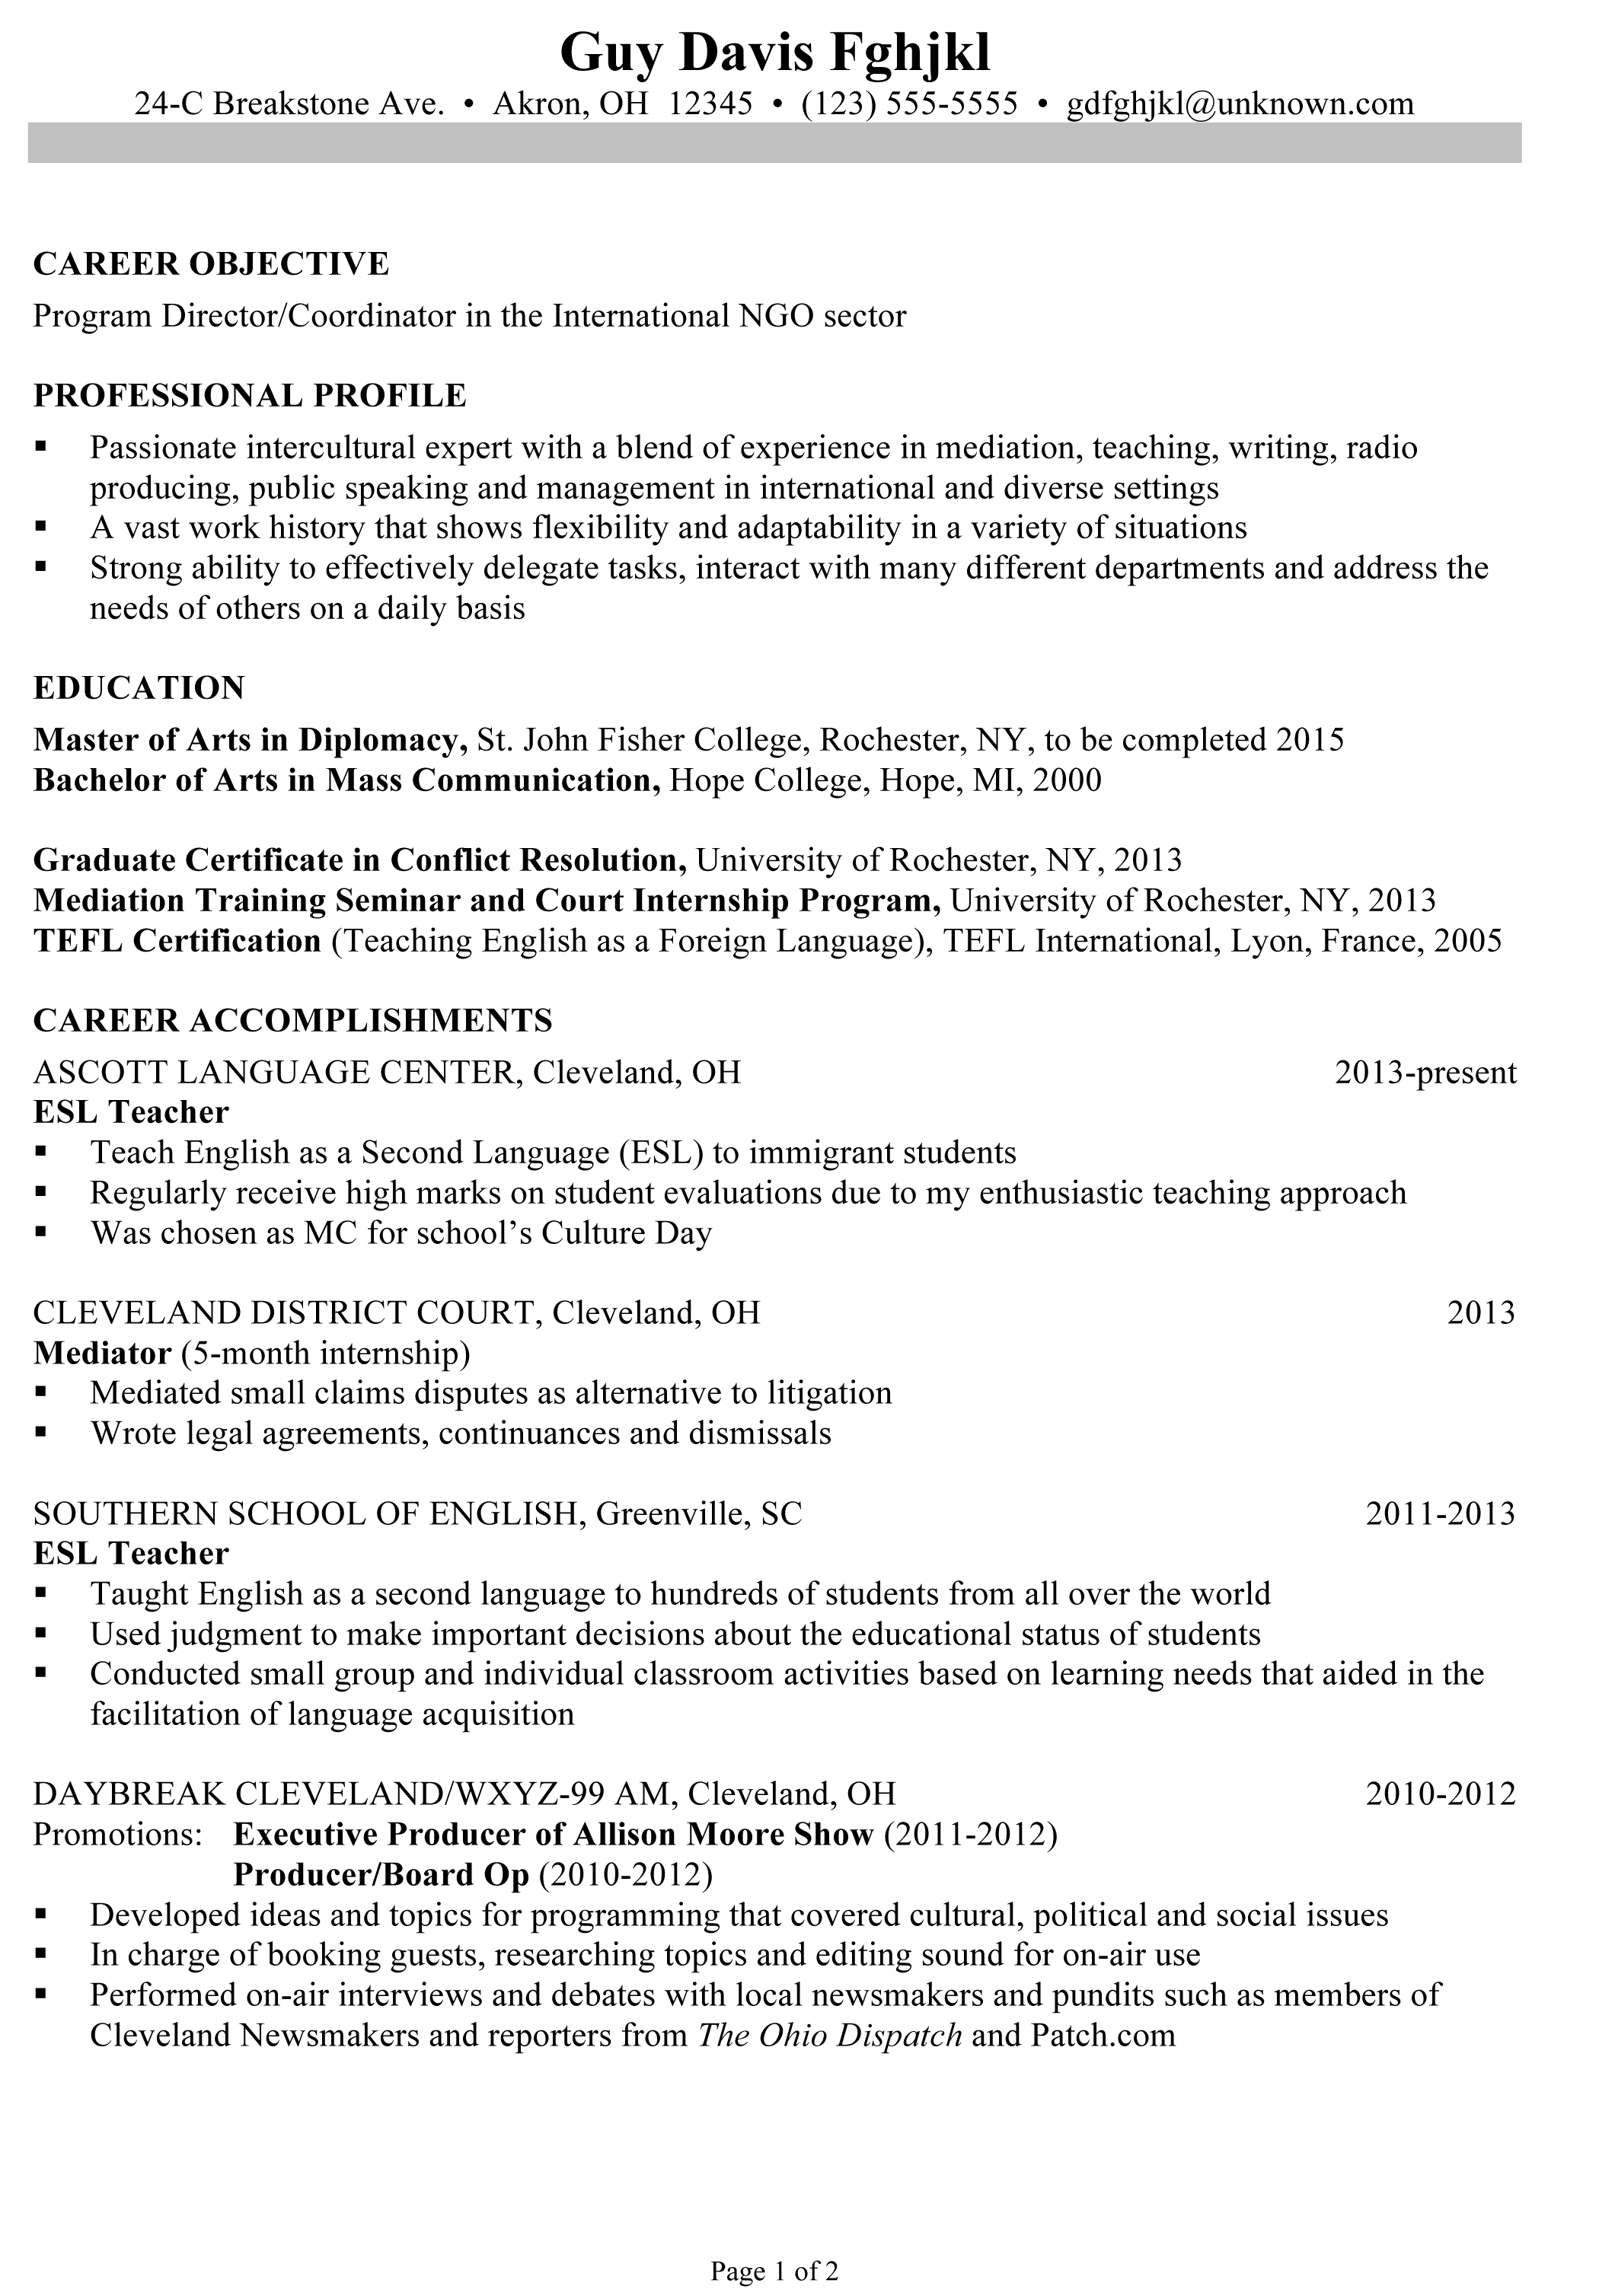 Chronological Resume Template Chronological Resume Sample Program Director Coordinator  My